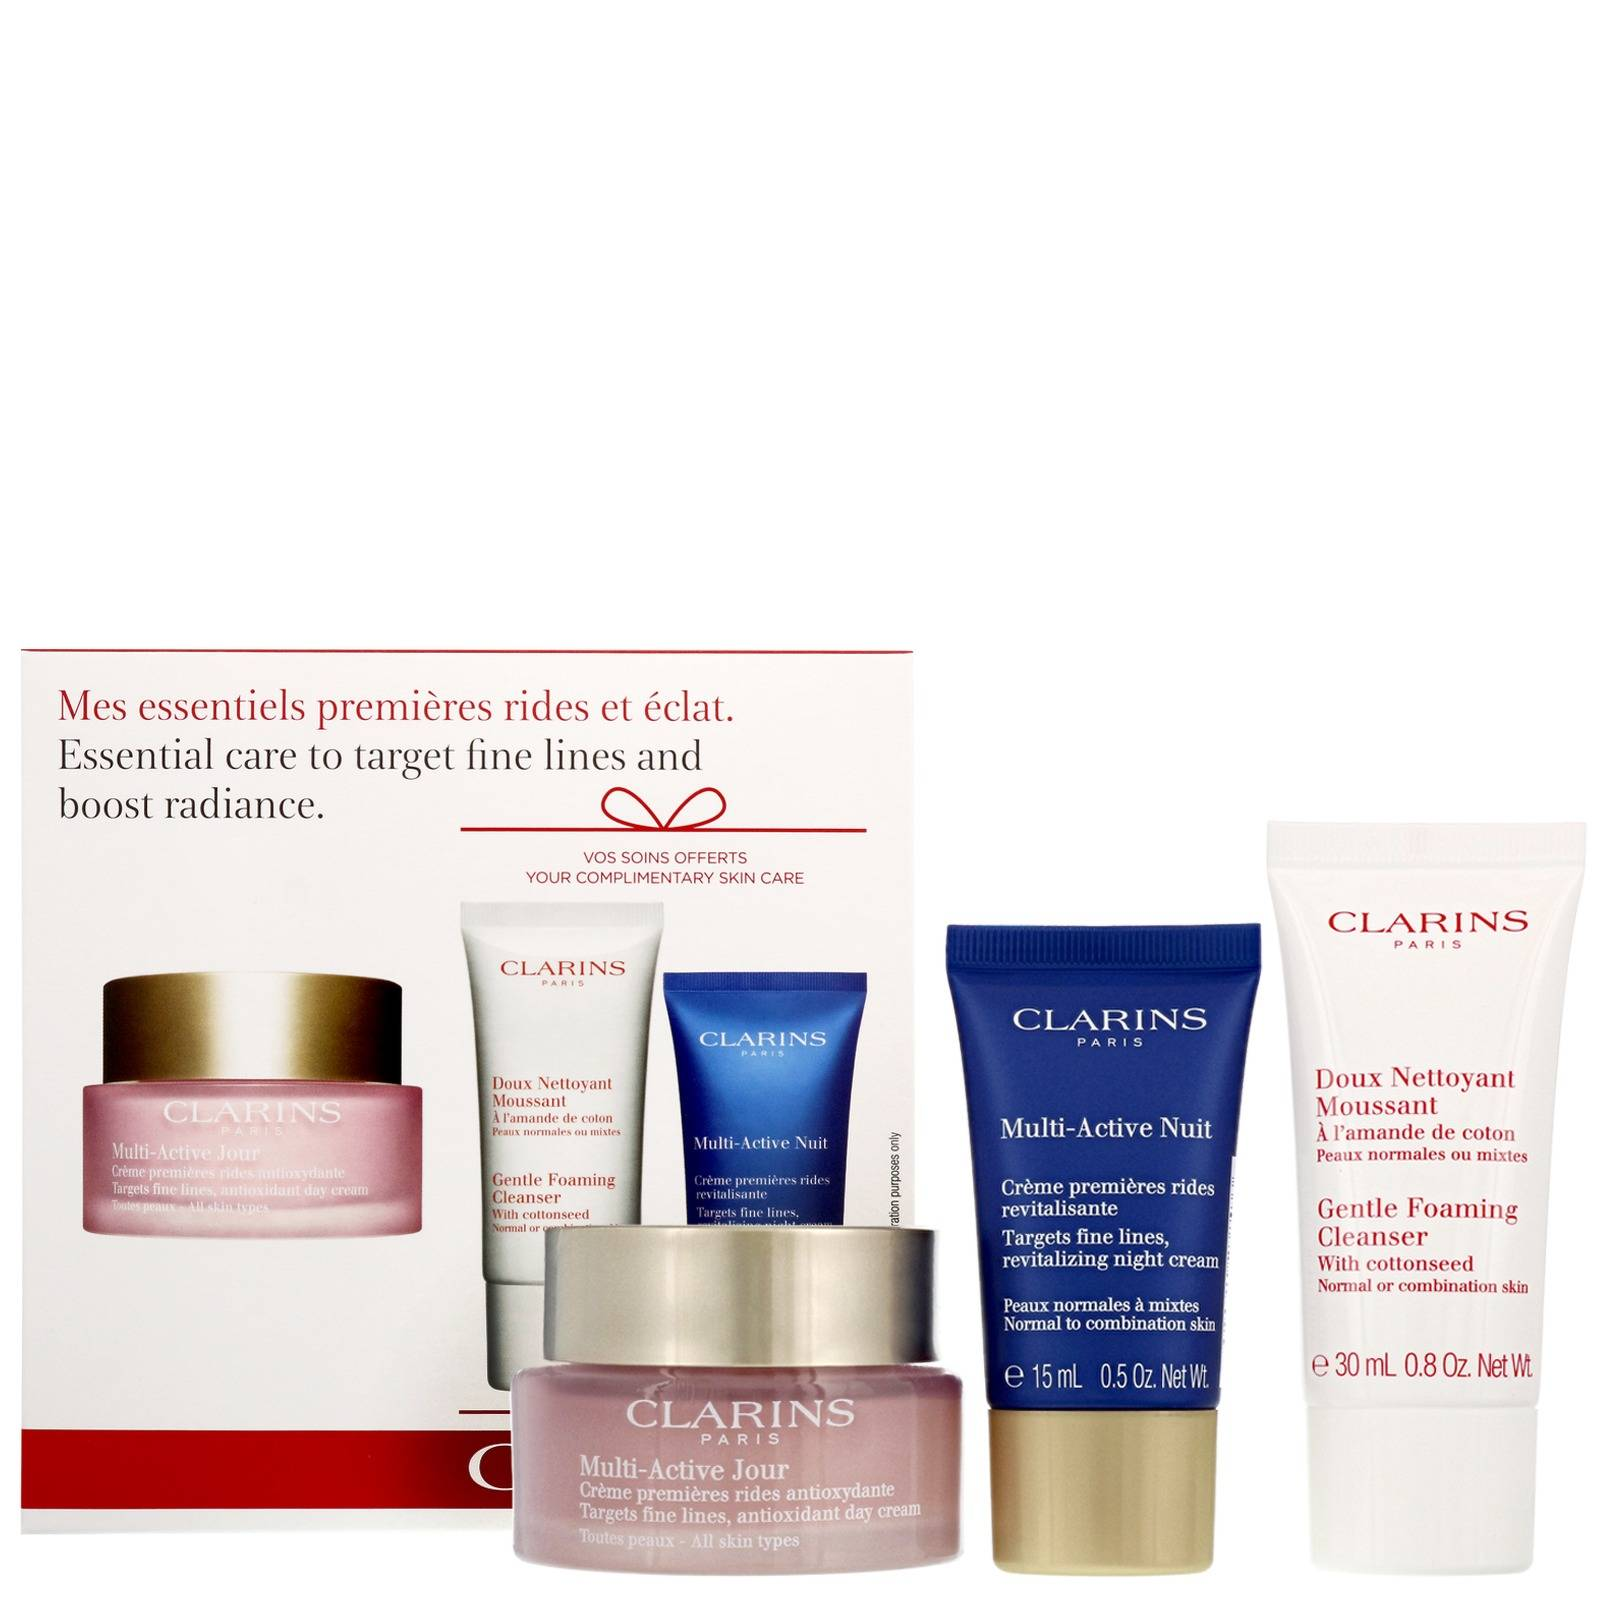 Clarins - Gifts & Sets Multi Active Day Cream 50ml Gift Set for Women